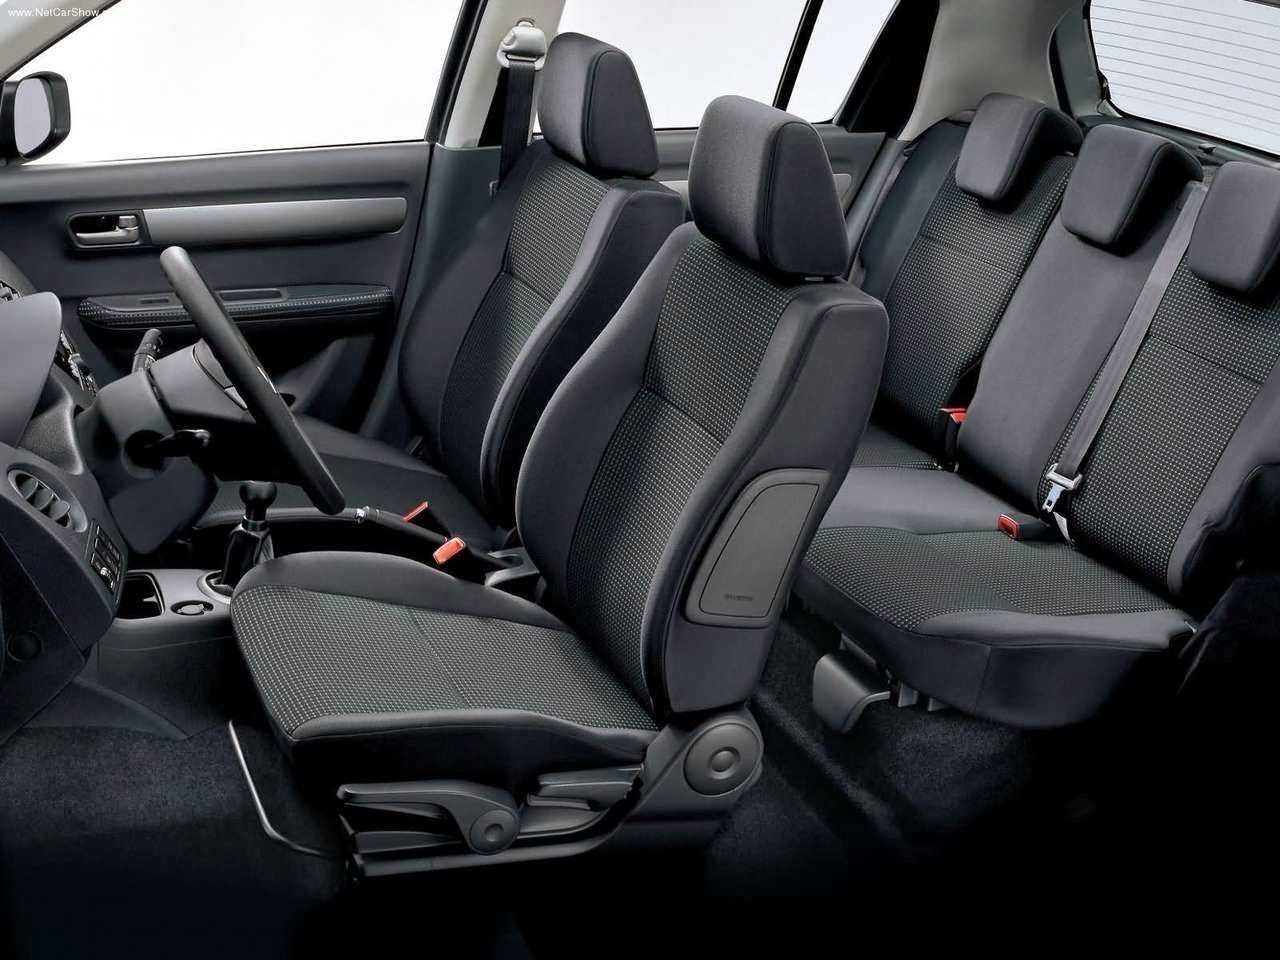 sports cars suzuki swift interior. Black Bedroom Furniture Sets. Home Design Ideas